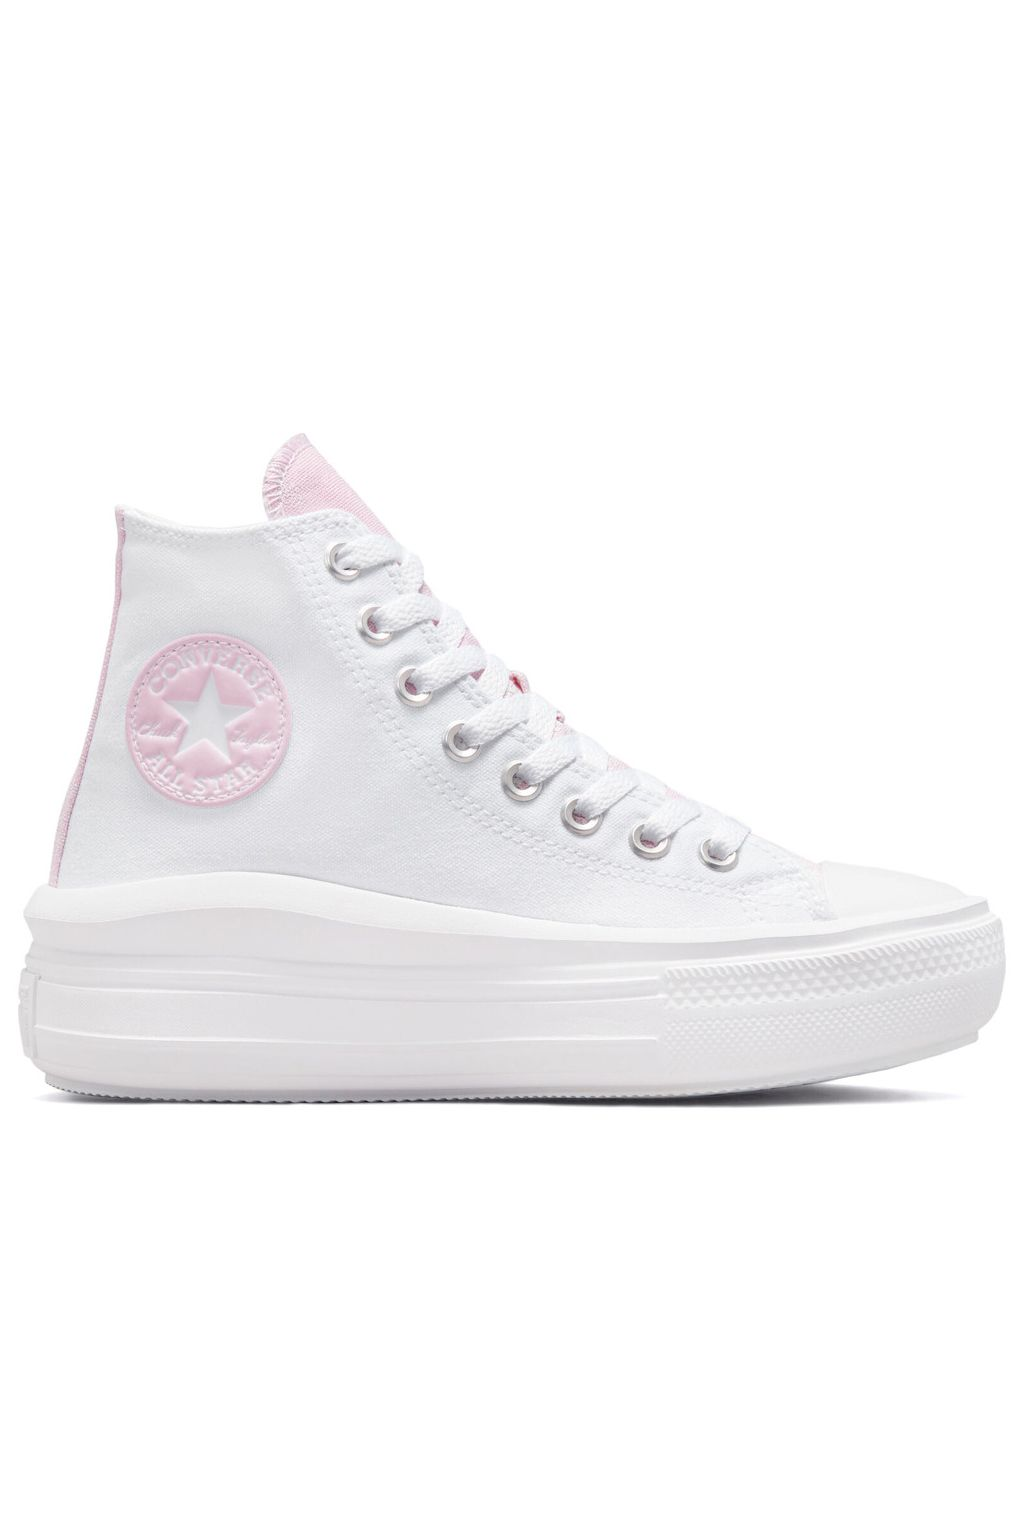 Converse Shoes CHUCK TAYLOR ALL STAR MOVE HI White/Pink Foam/White